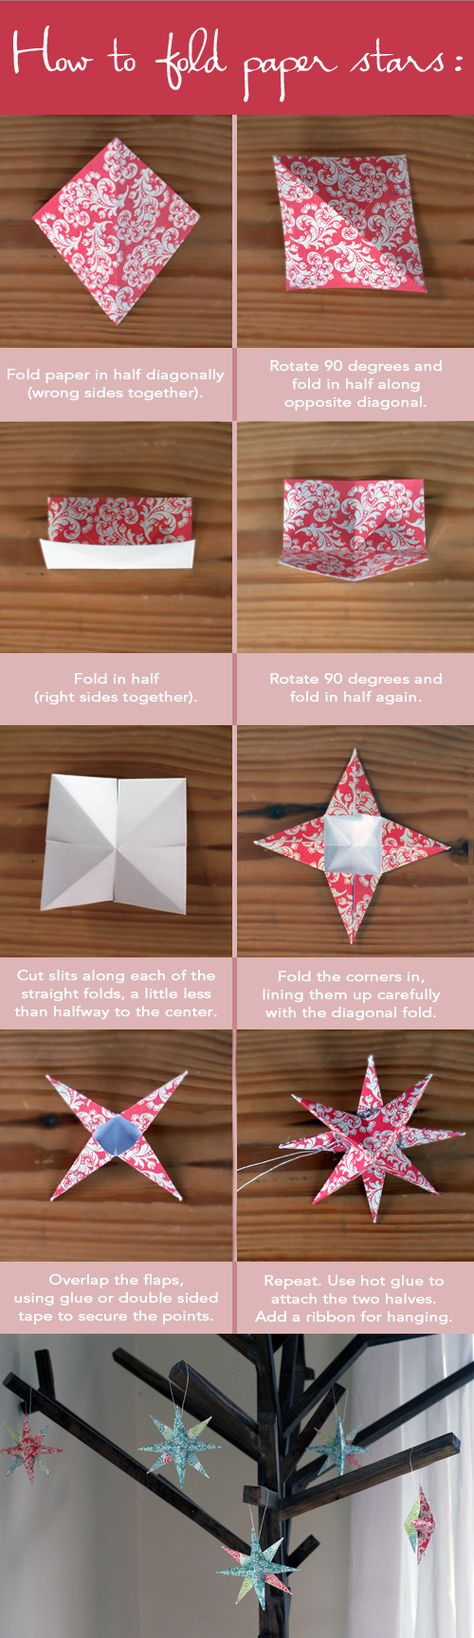 How to Fold Paper Stars - Noah would be good at this.